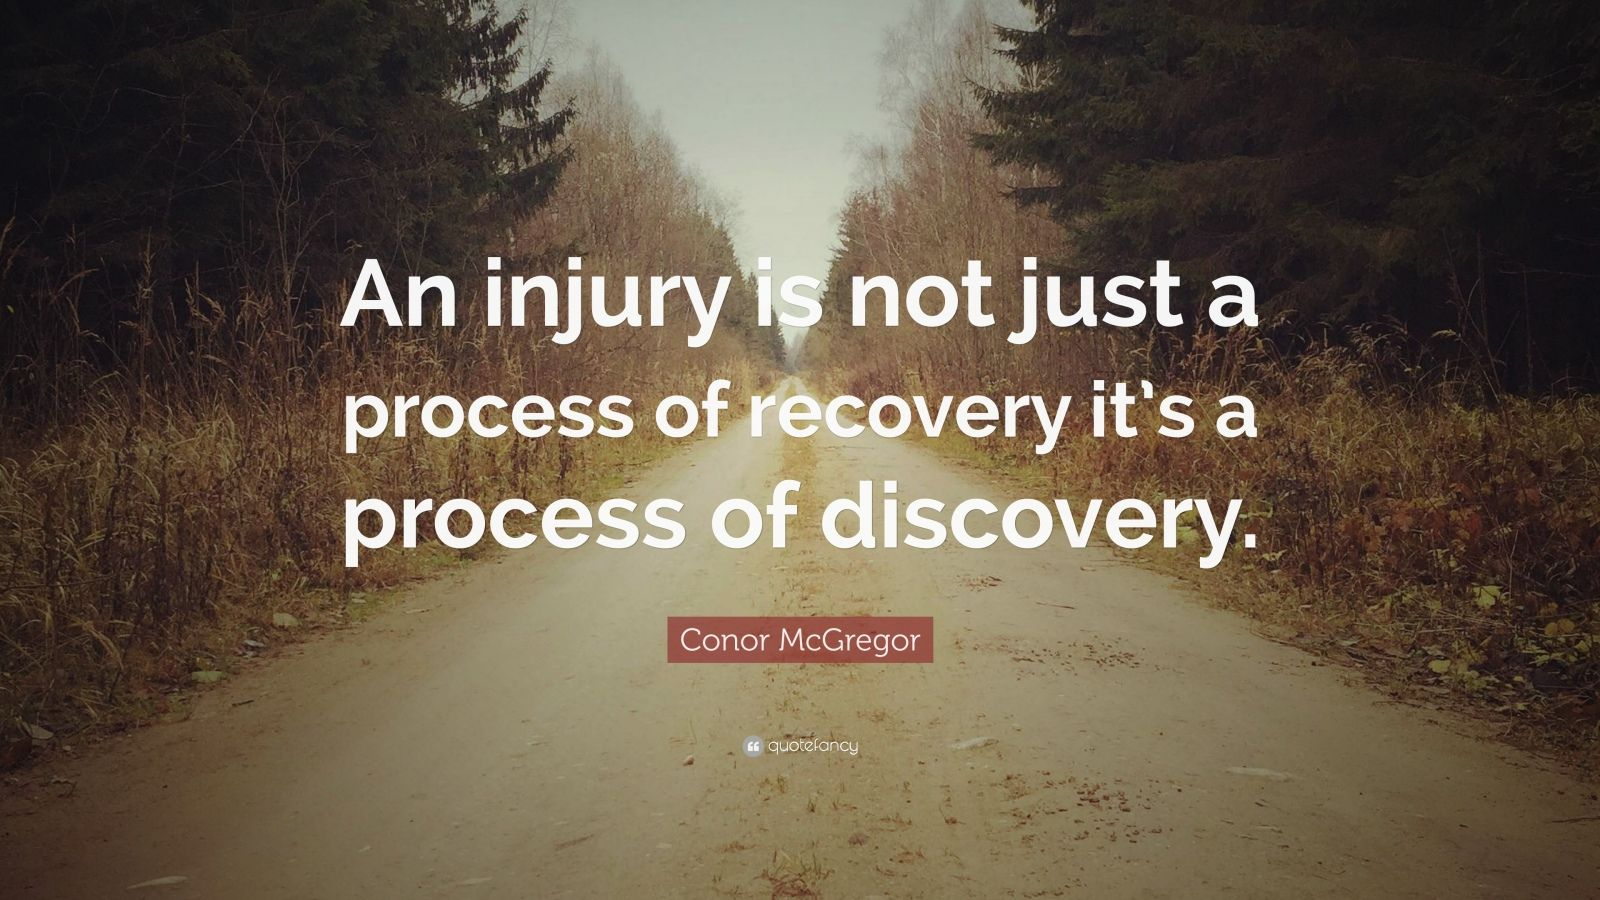 Conor Mcgregor Quote Wallpaper Conor Mcgregor Quote An Injury Is Not Just A Process Of